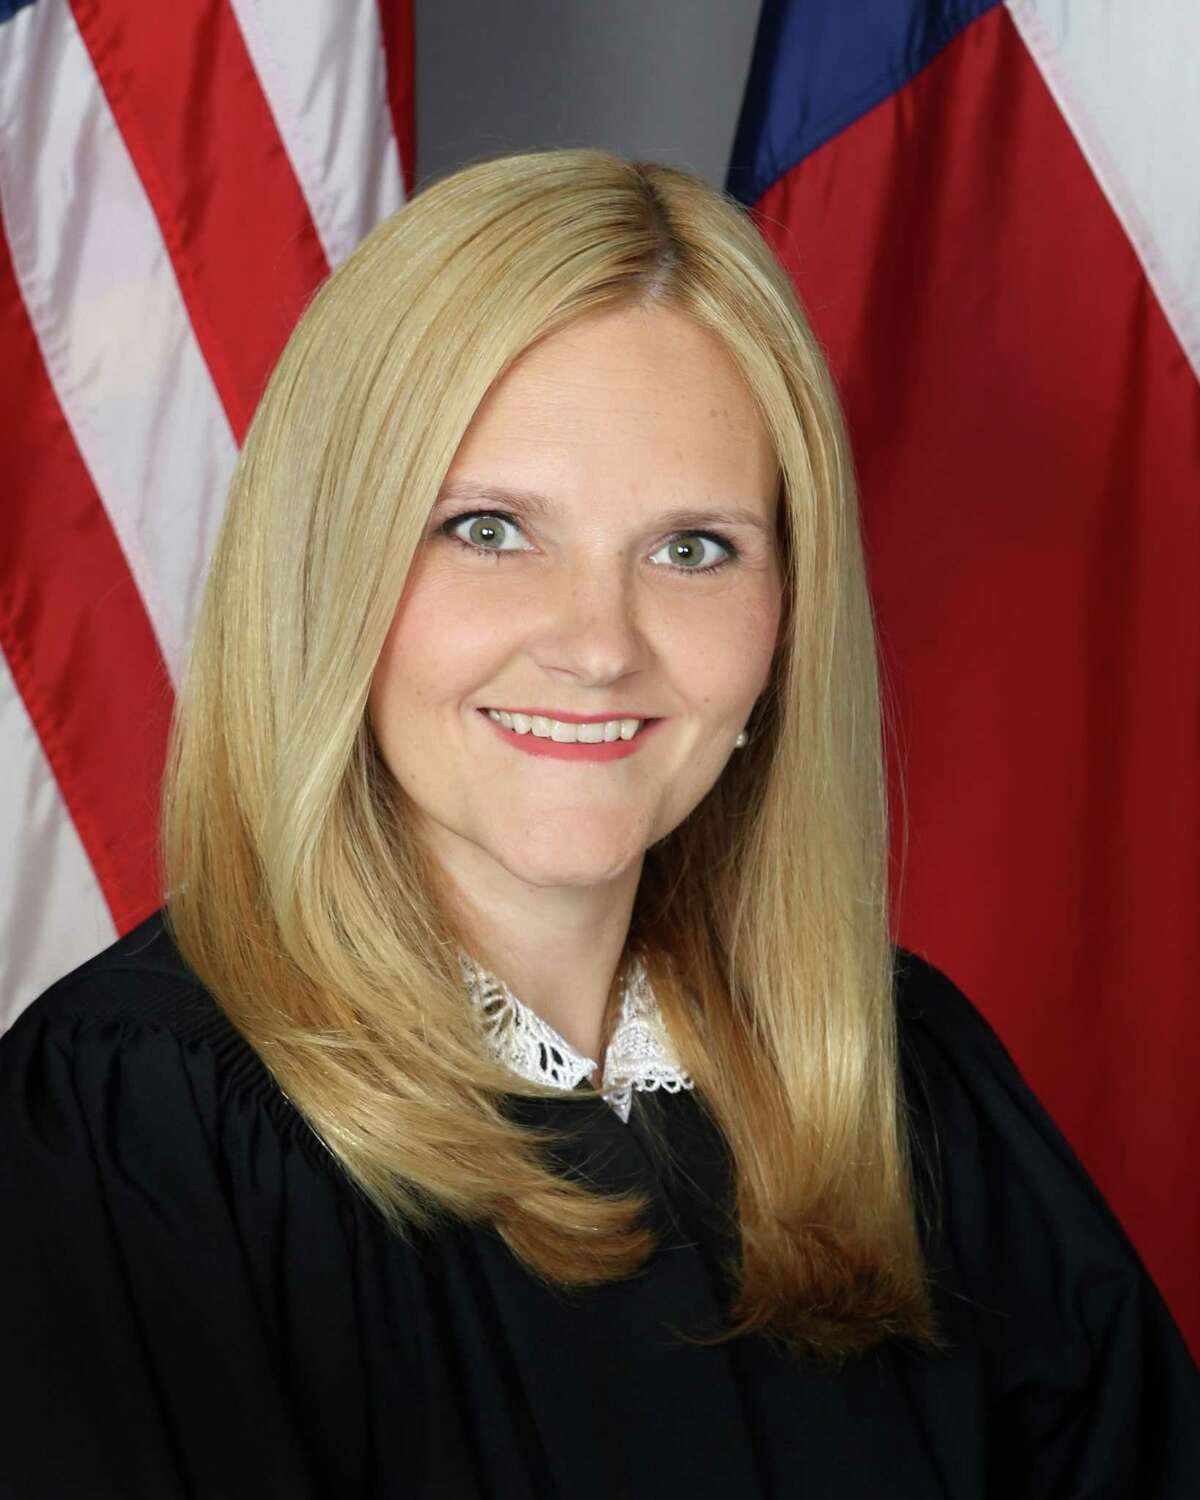 Laryssa Korduba, Justice of the Peace for Pct. 4, Place 2, will speak during the regular second Monday meeting of the Northwest Forest Republican Women on April 12.